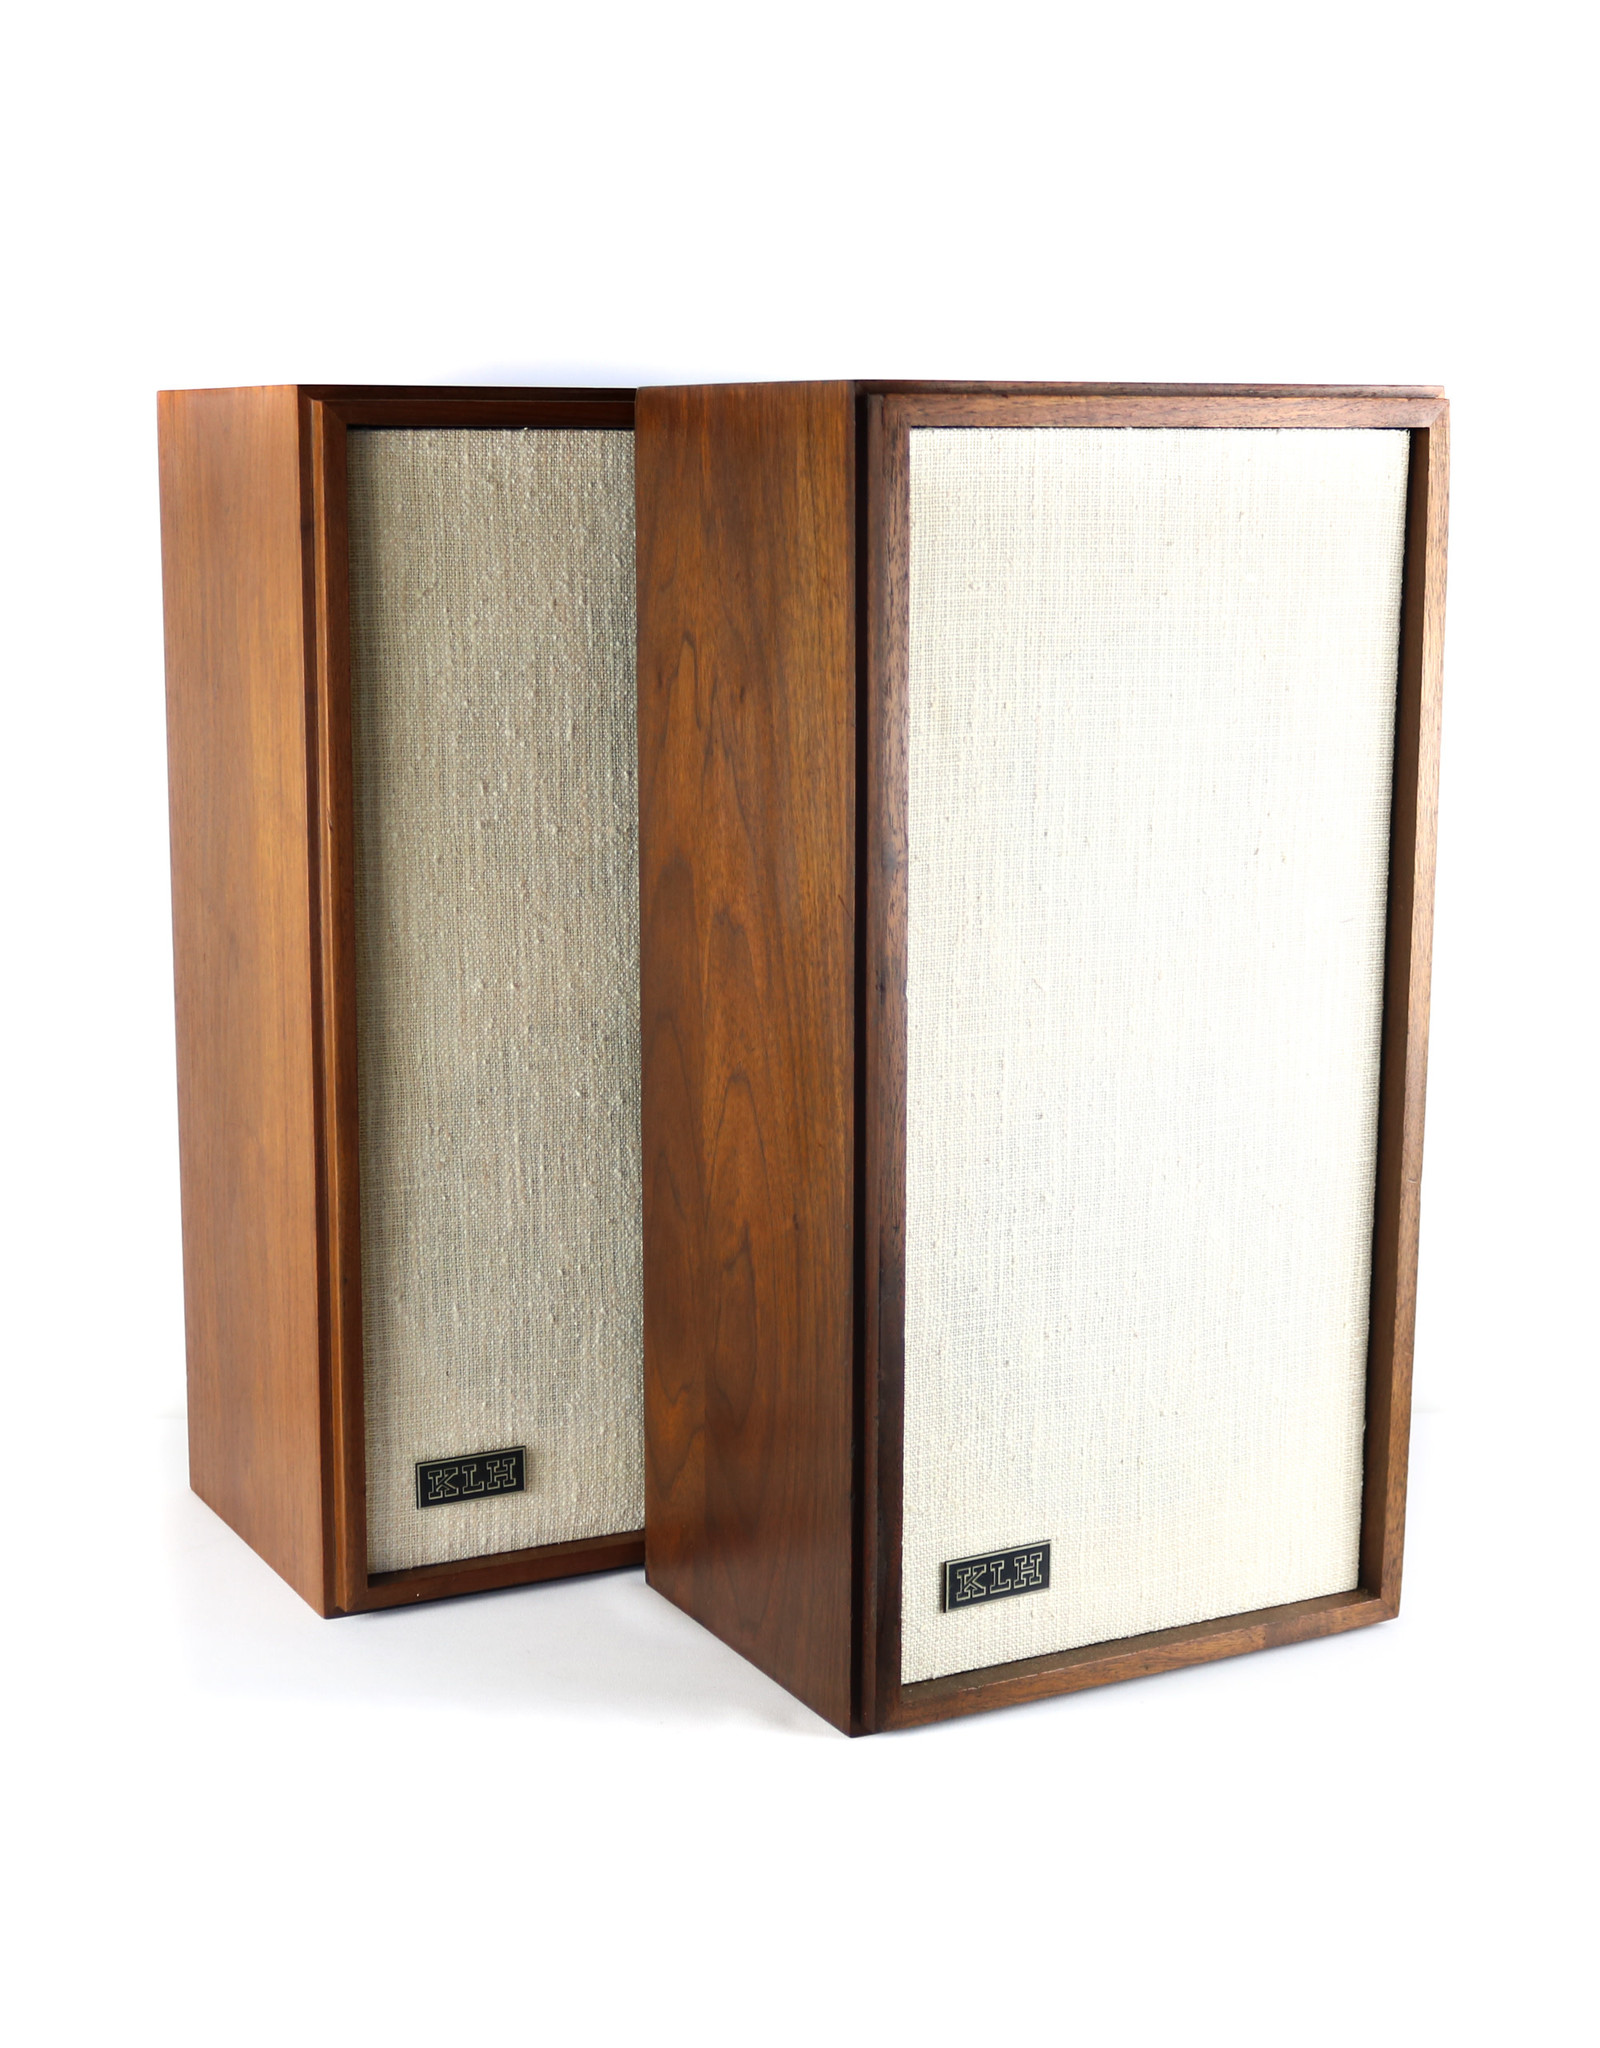 KLH KLH 17 Standmount Speakers USED